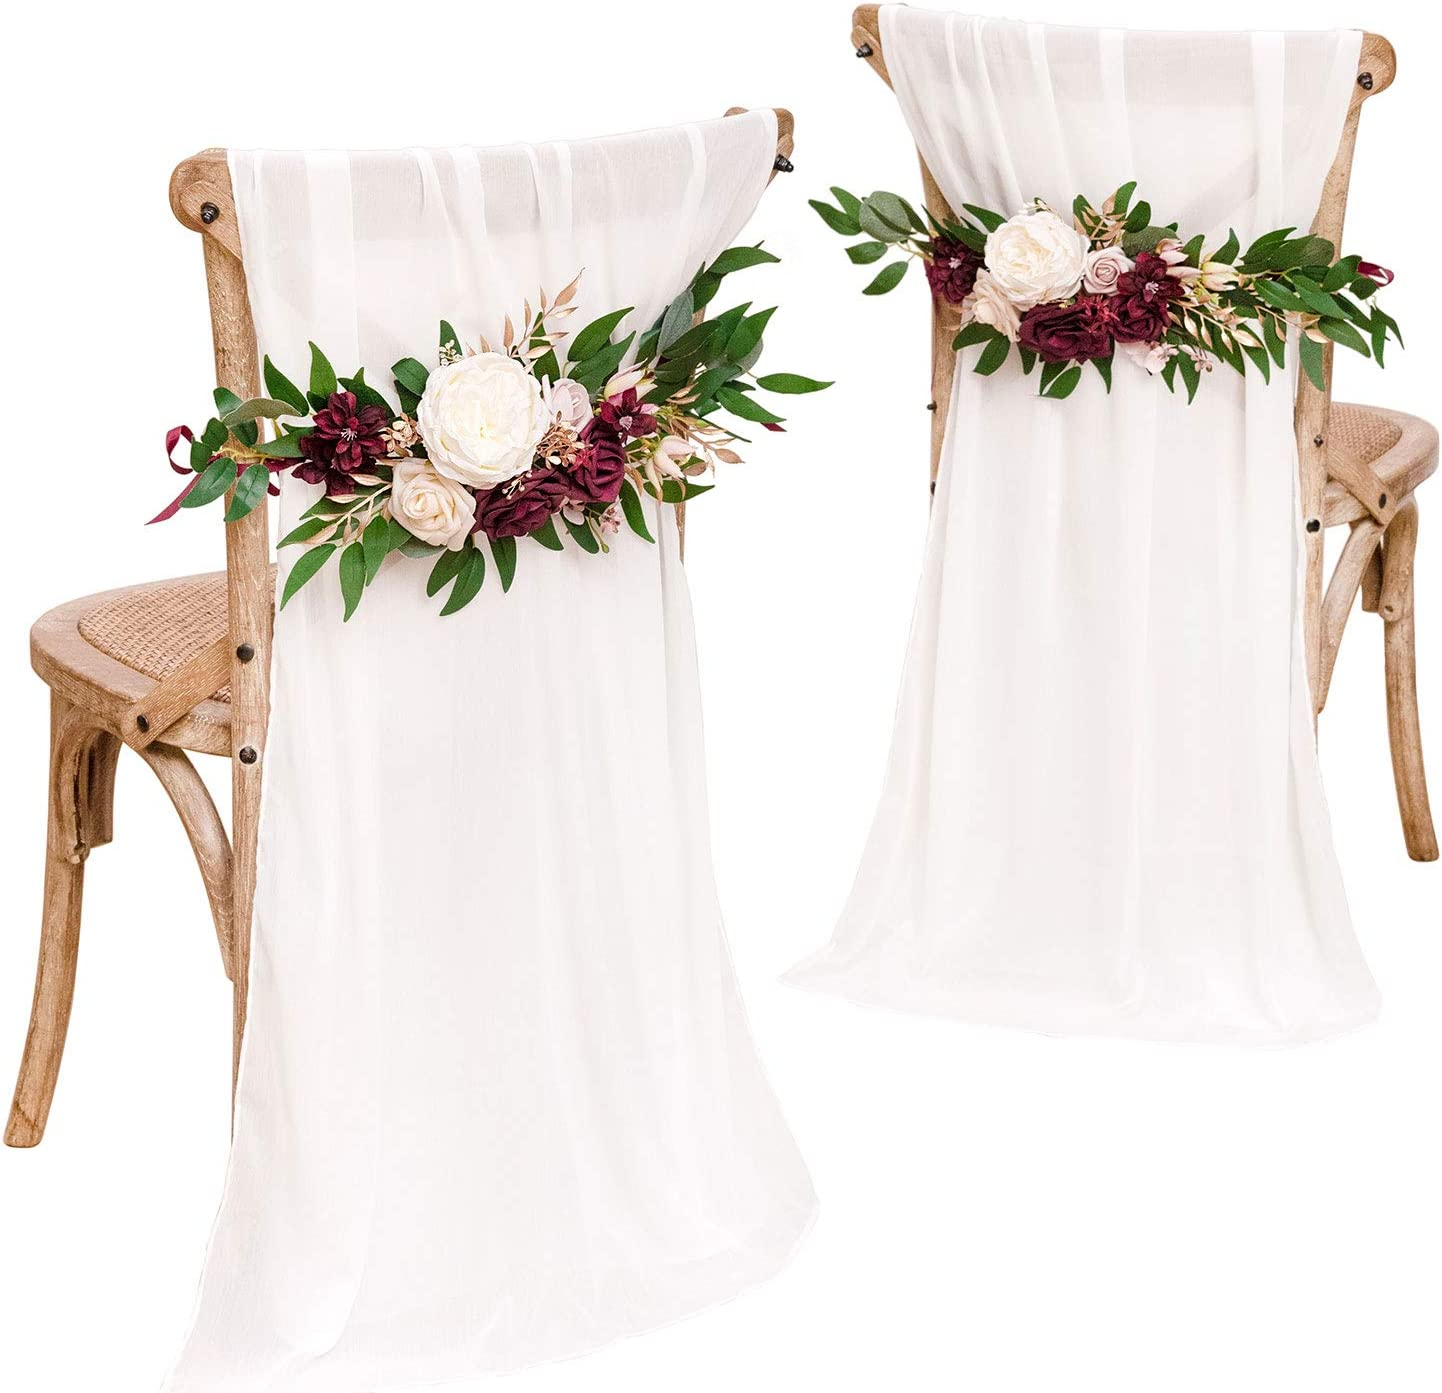 Ling's moment Set of 2 Rustic Wedding Chair Decoration for Bride Groom with Sashes